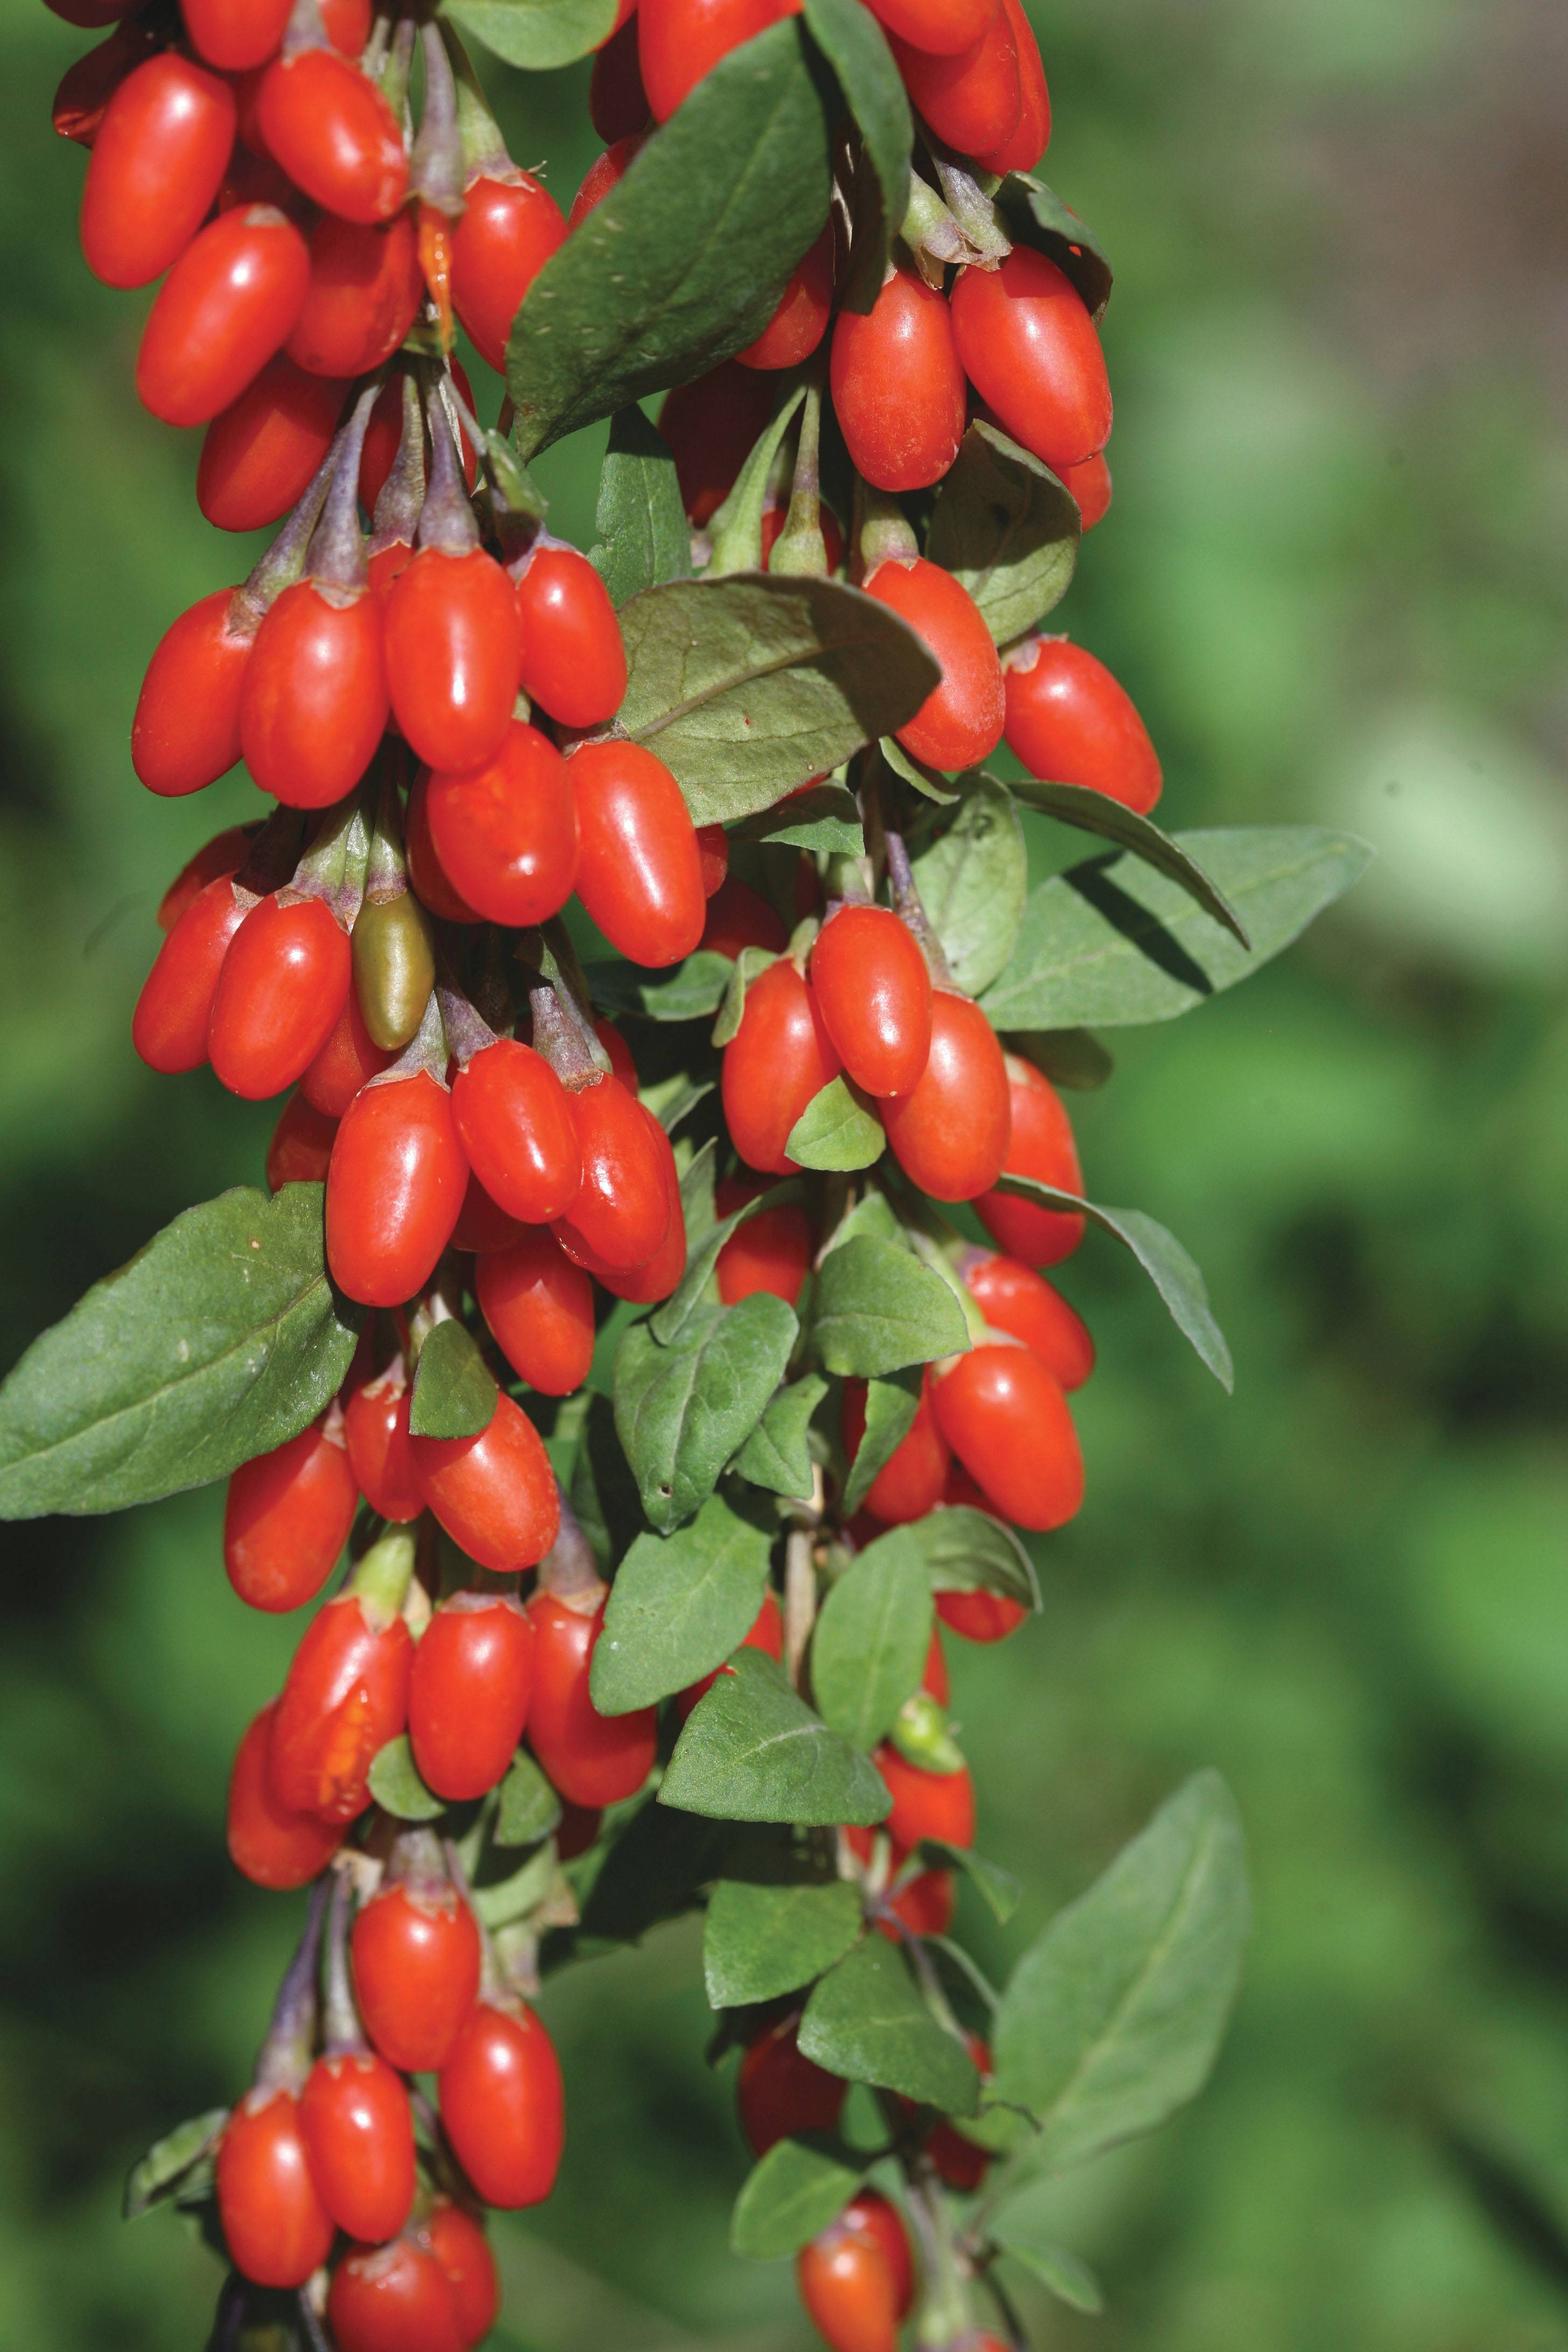 Goji berries are rich in antioxidants and great fresh on cereal, in salads or blended into healthy drinks.